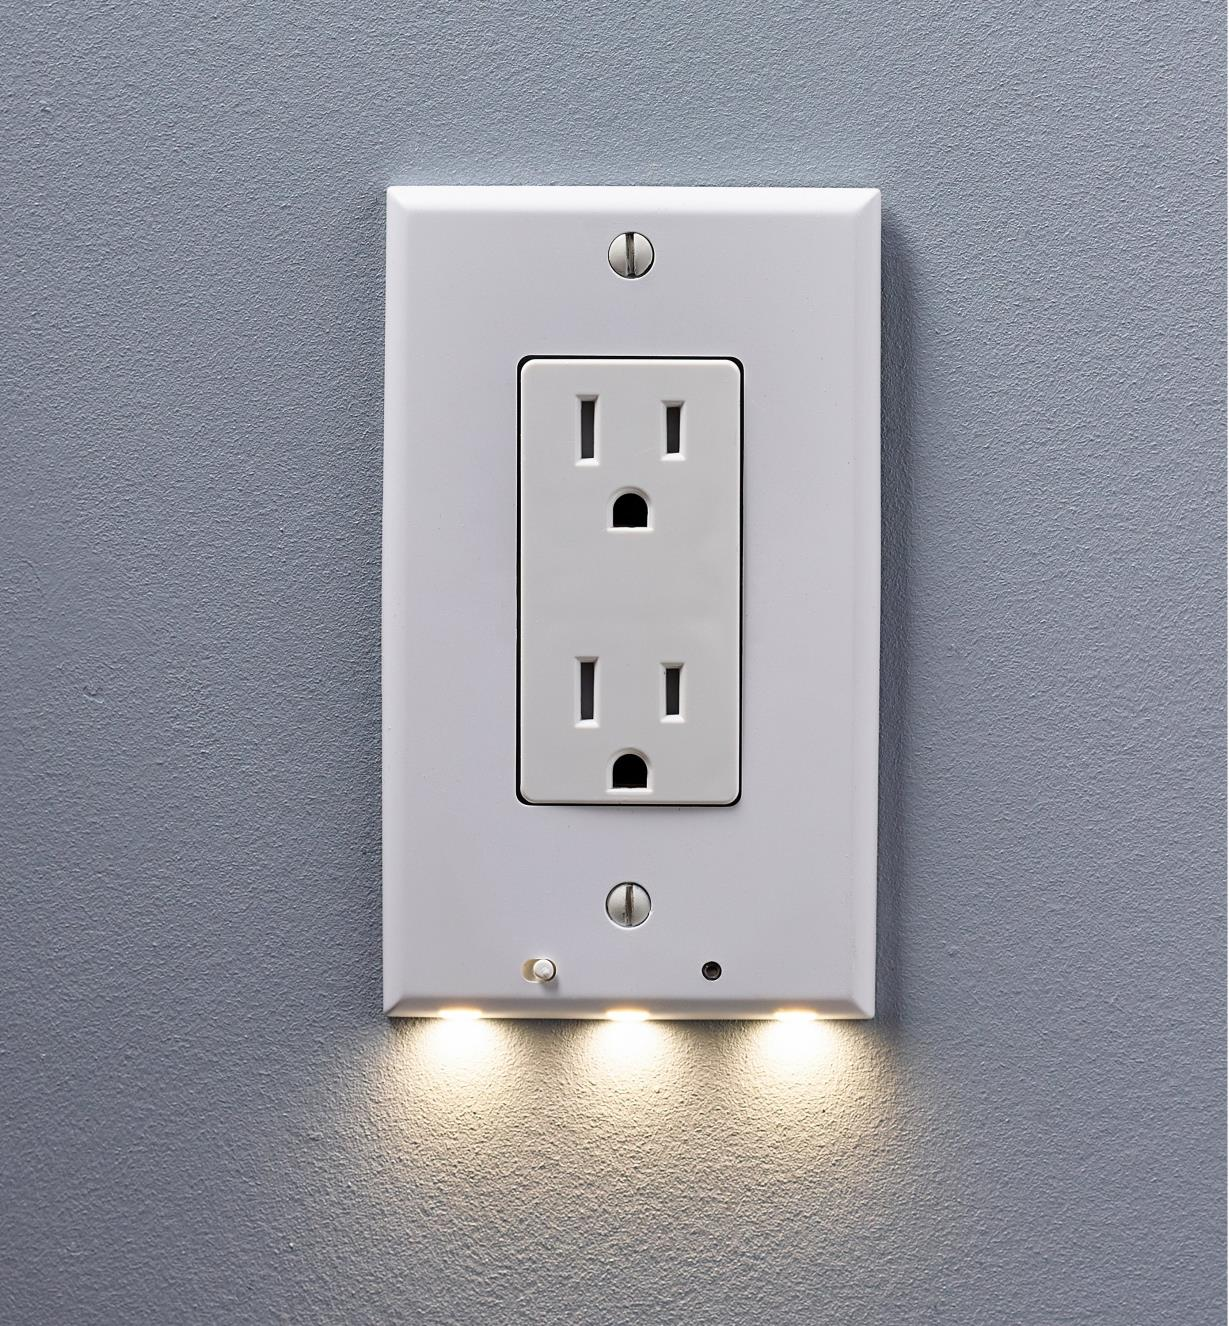 99W0272 - Decora-Style LED Outlet Cover Plate